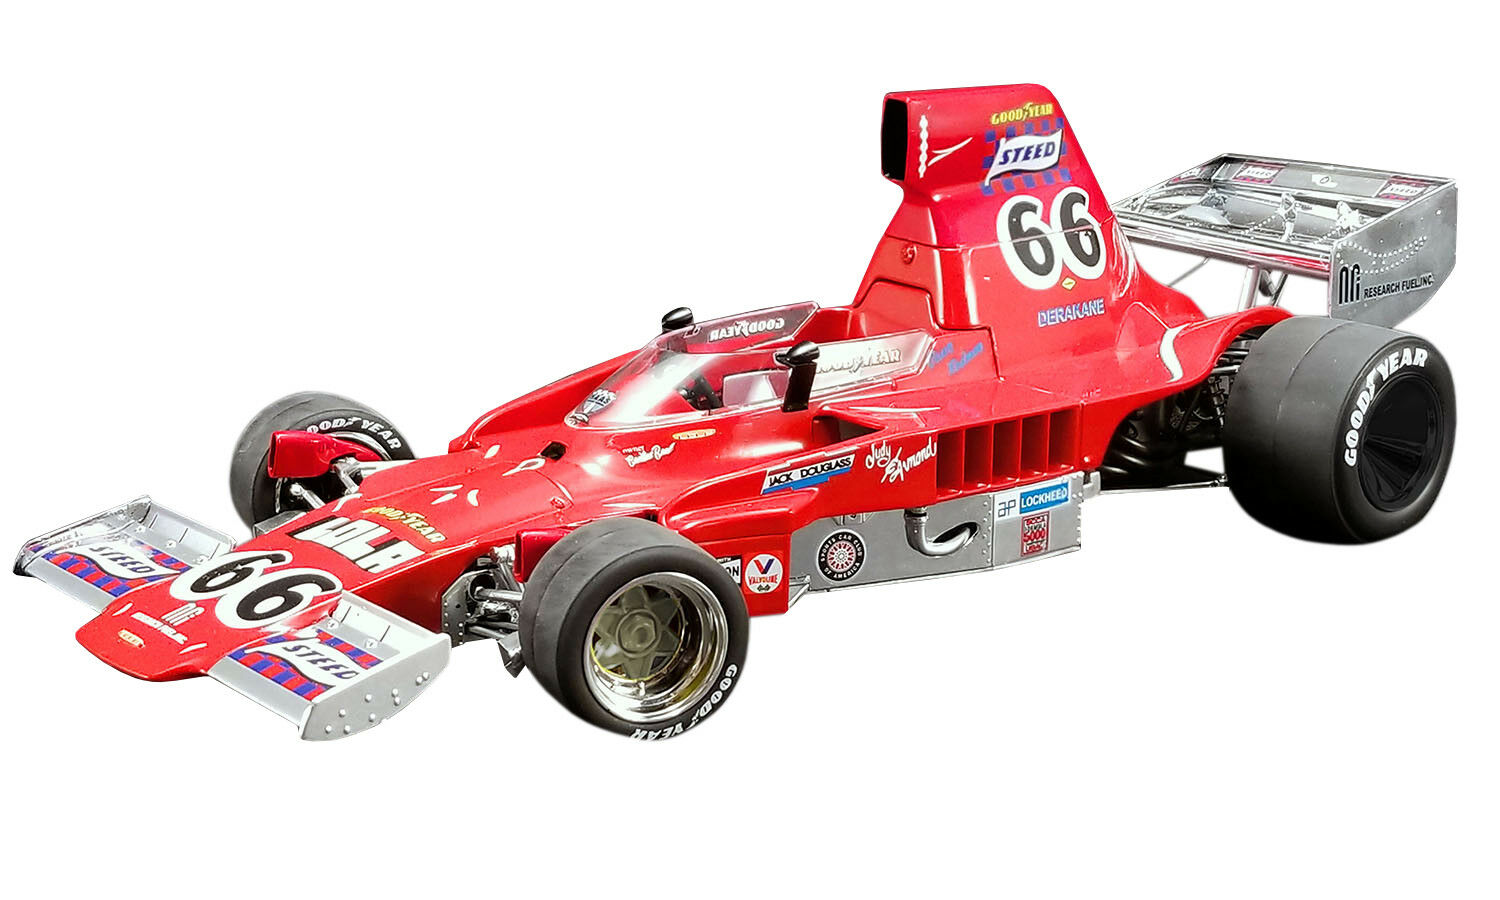 Steed T332  66 Brian rougeMAN 1974 F5000 Champion limited 300 pcs 1 18 ACME A1802001